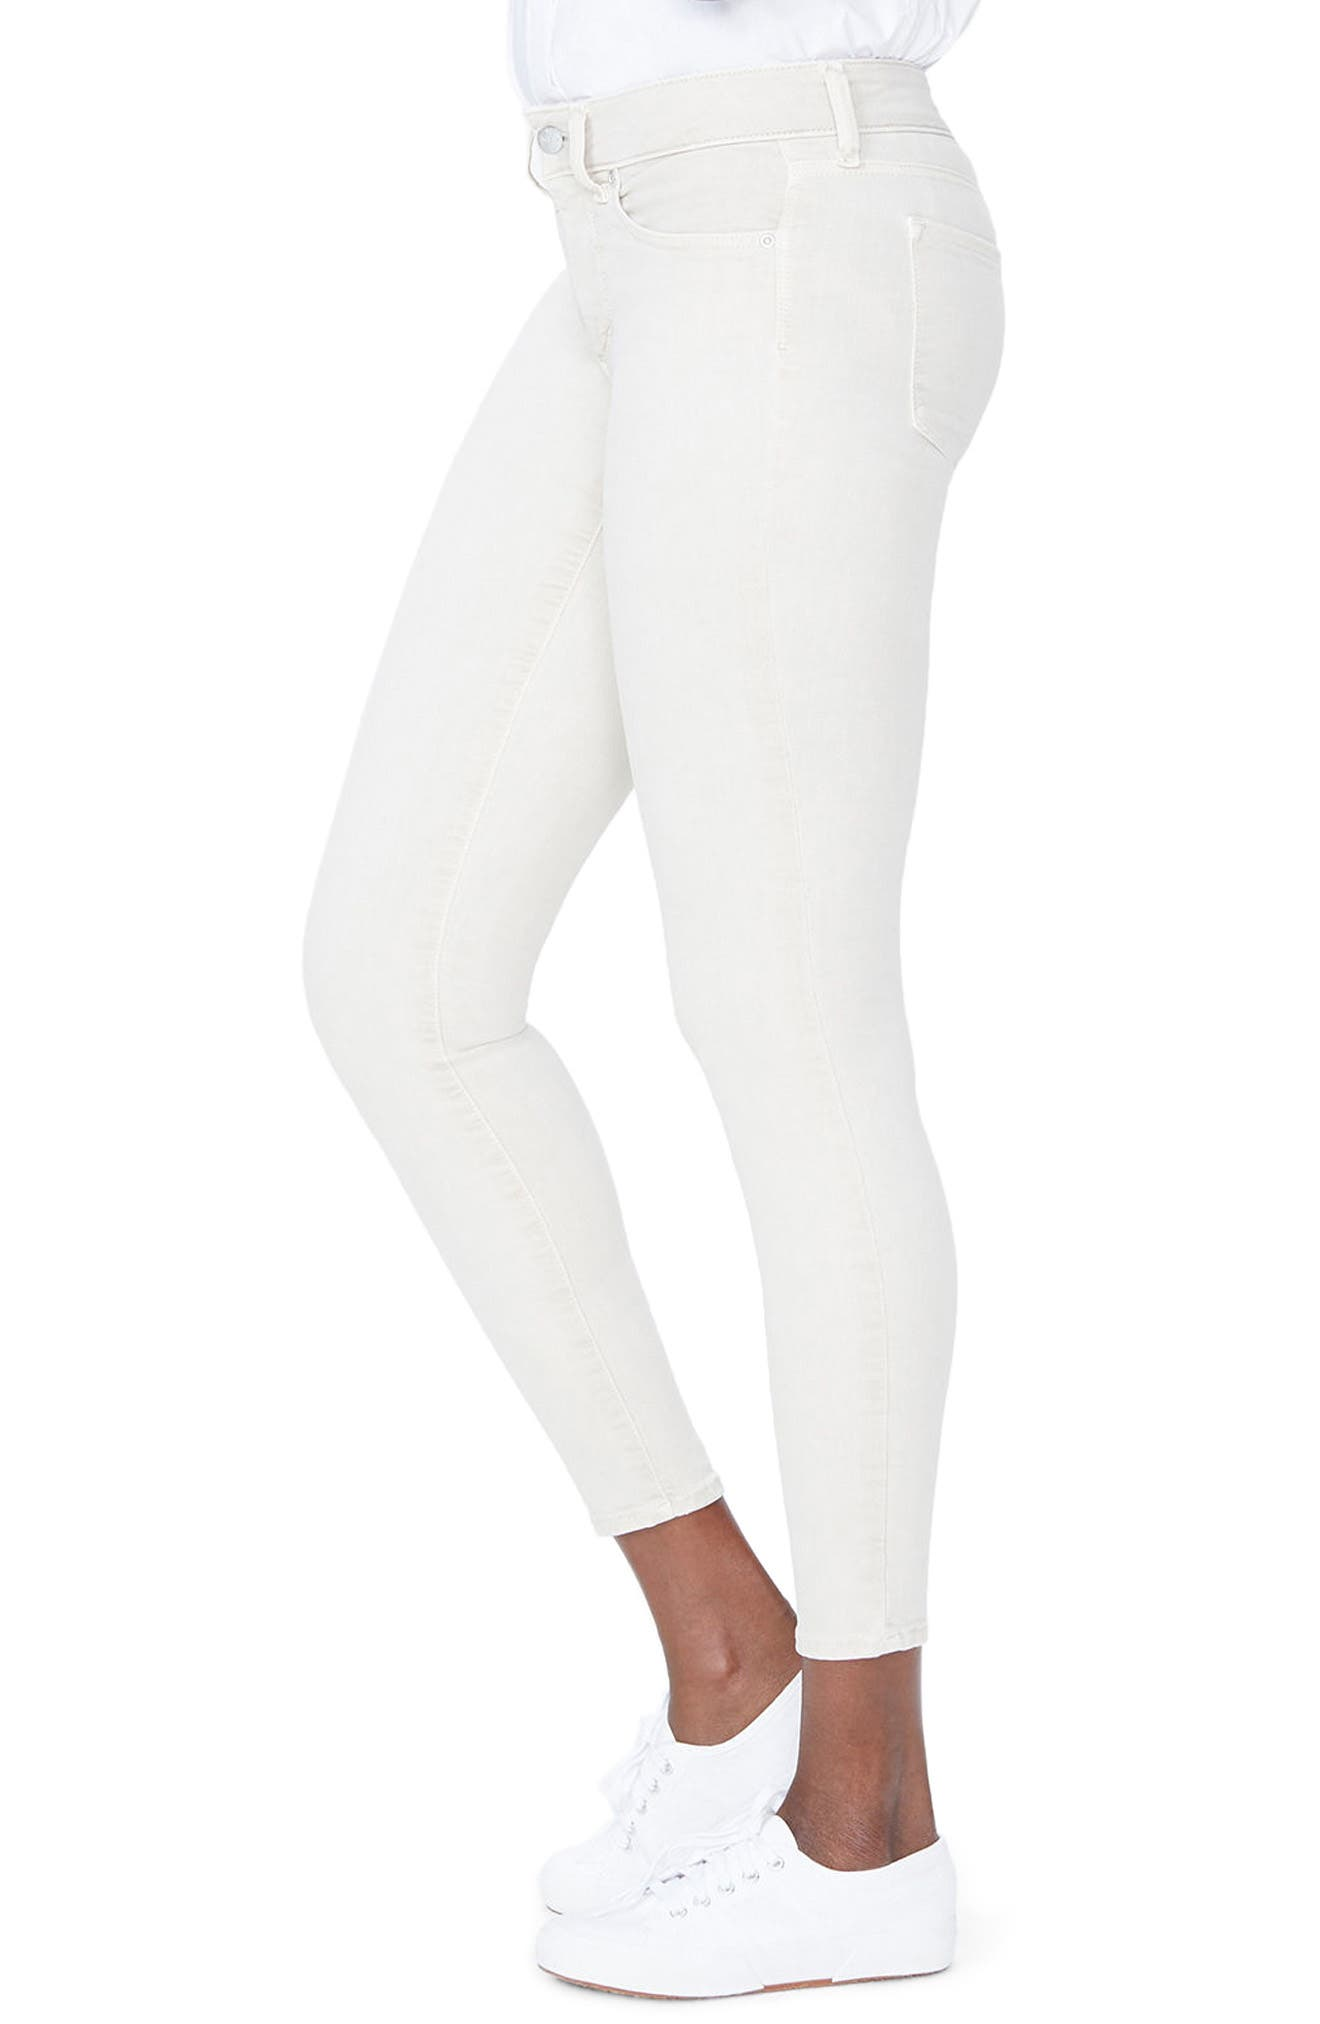 Ami Ankle Skinny Jeans,                             Alternate thumbnail 3, color,                             Feather